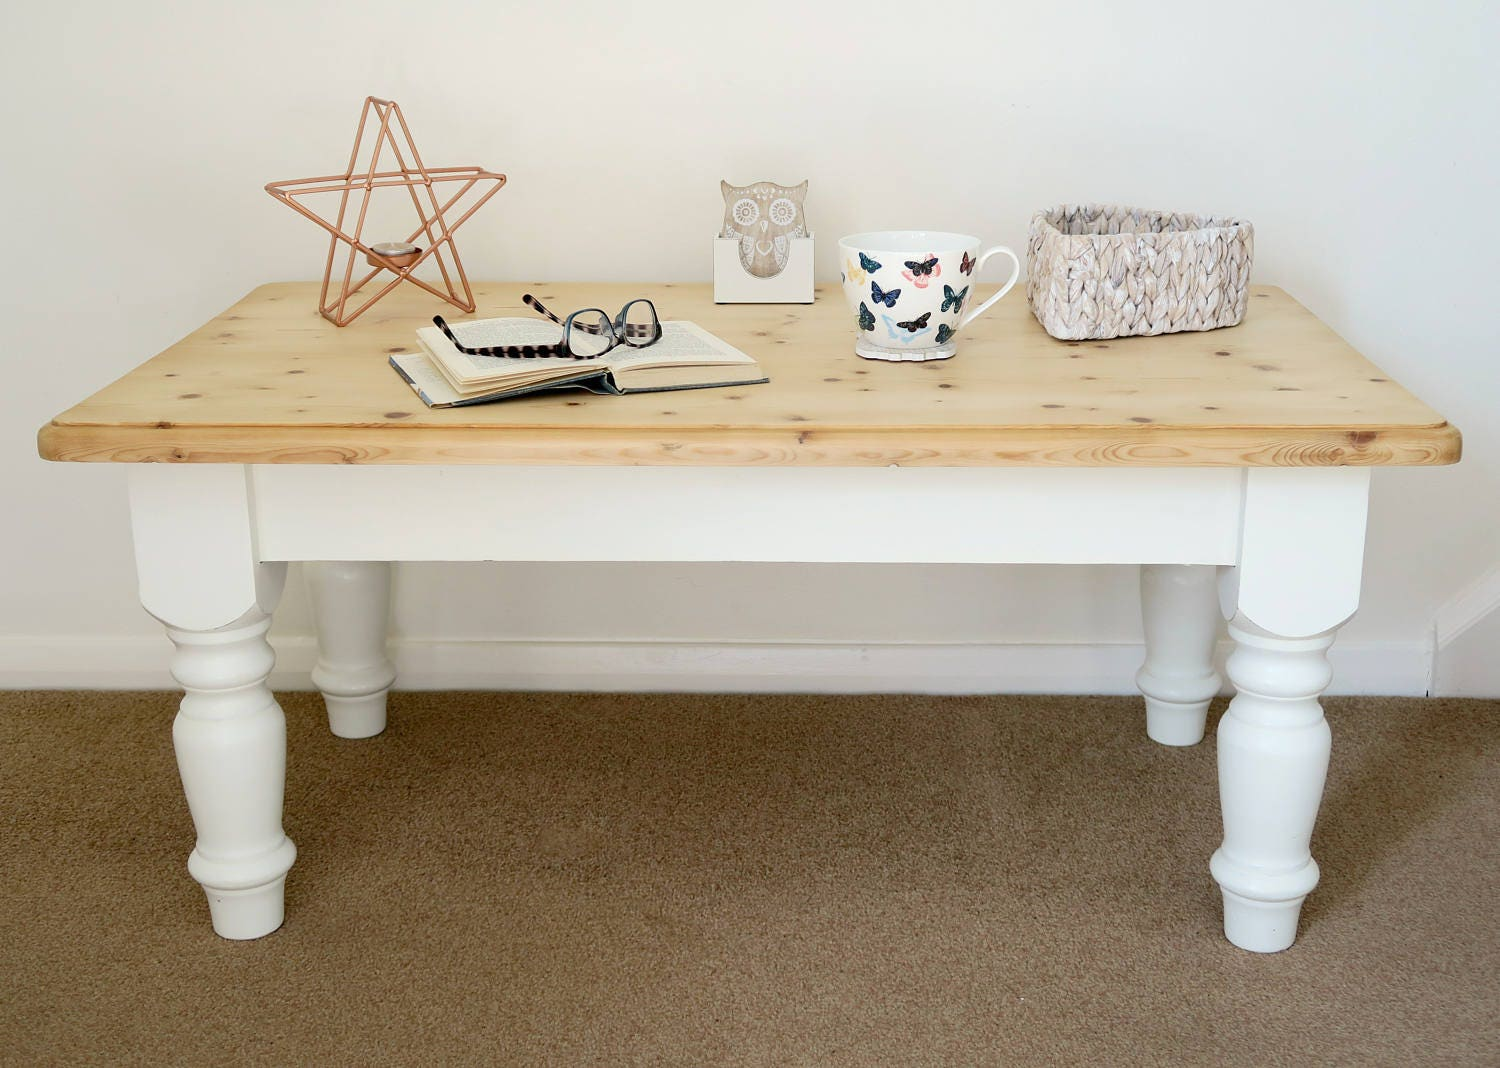 Upcycled Furniture Coffee Table Painted Coffee Table Solid Pine Home Decor Shabby Chic Table Distressed Furniture Natural Wood